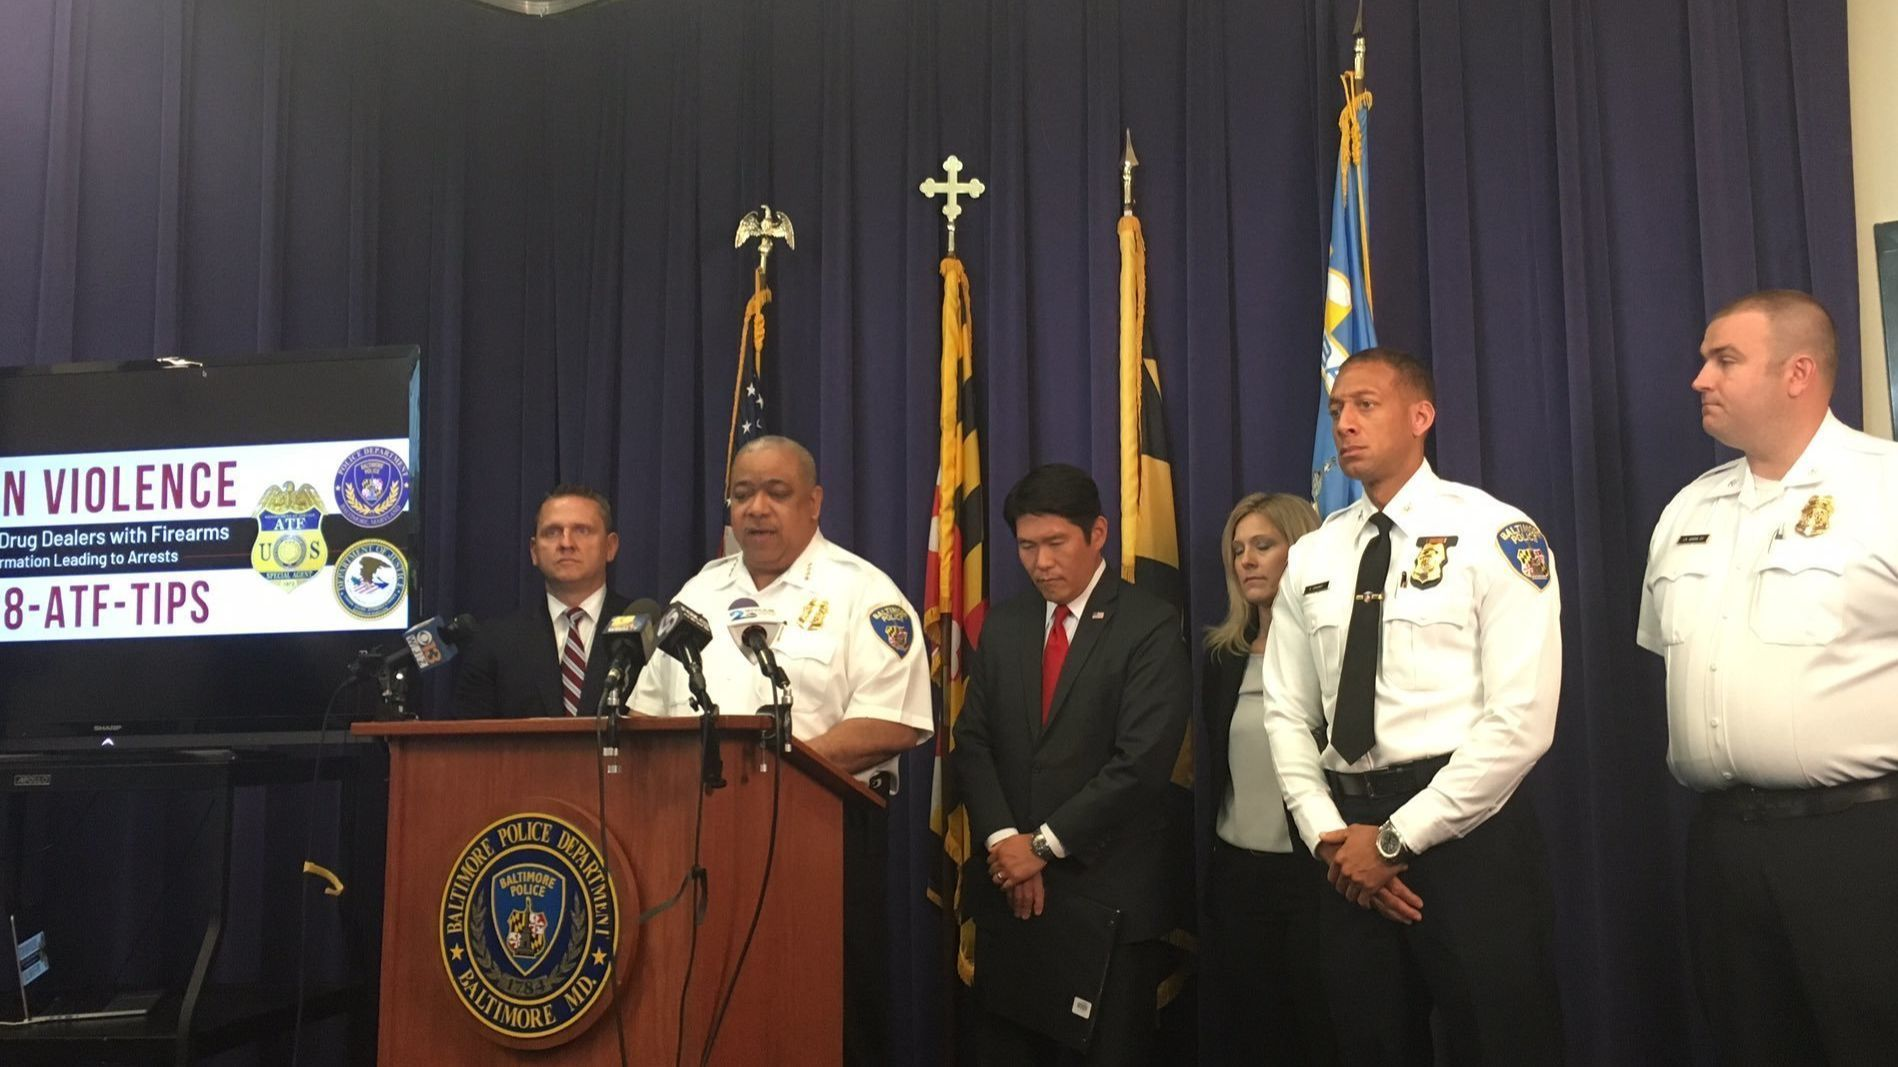 Baltimore residents can get paid for reporting armed felons and drug dealers to law enforcement